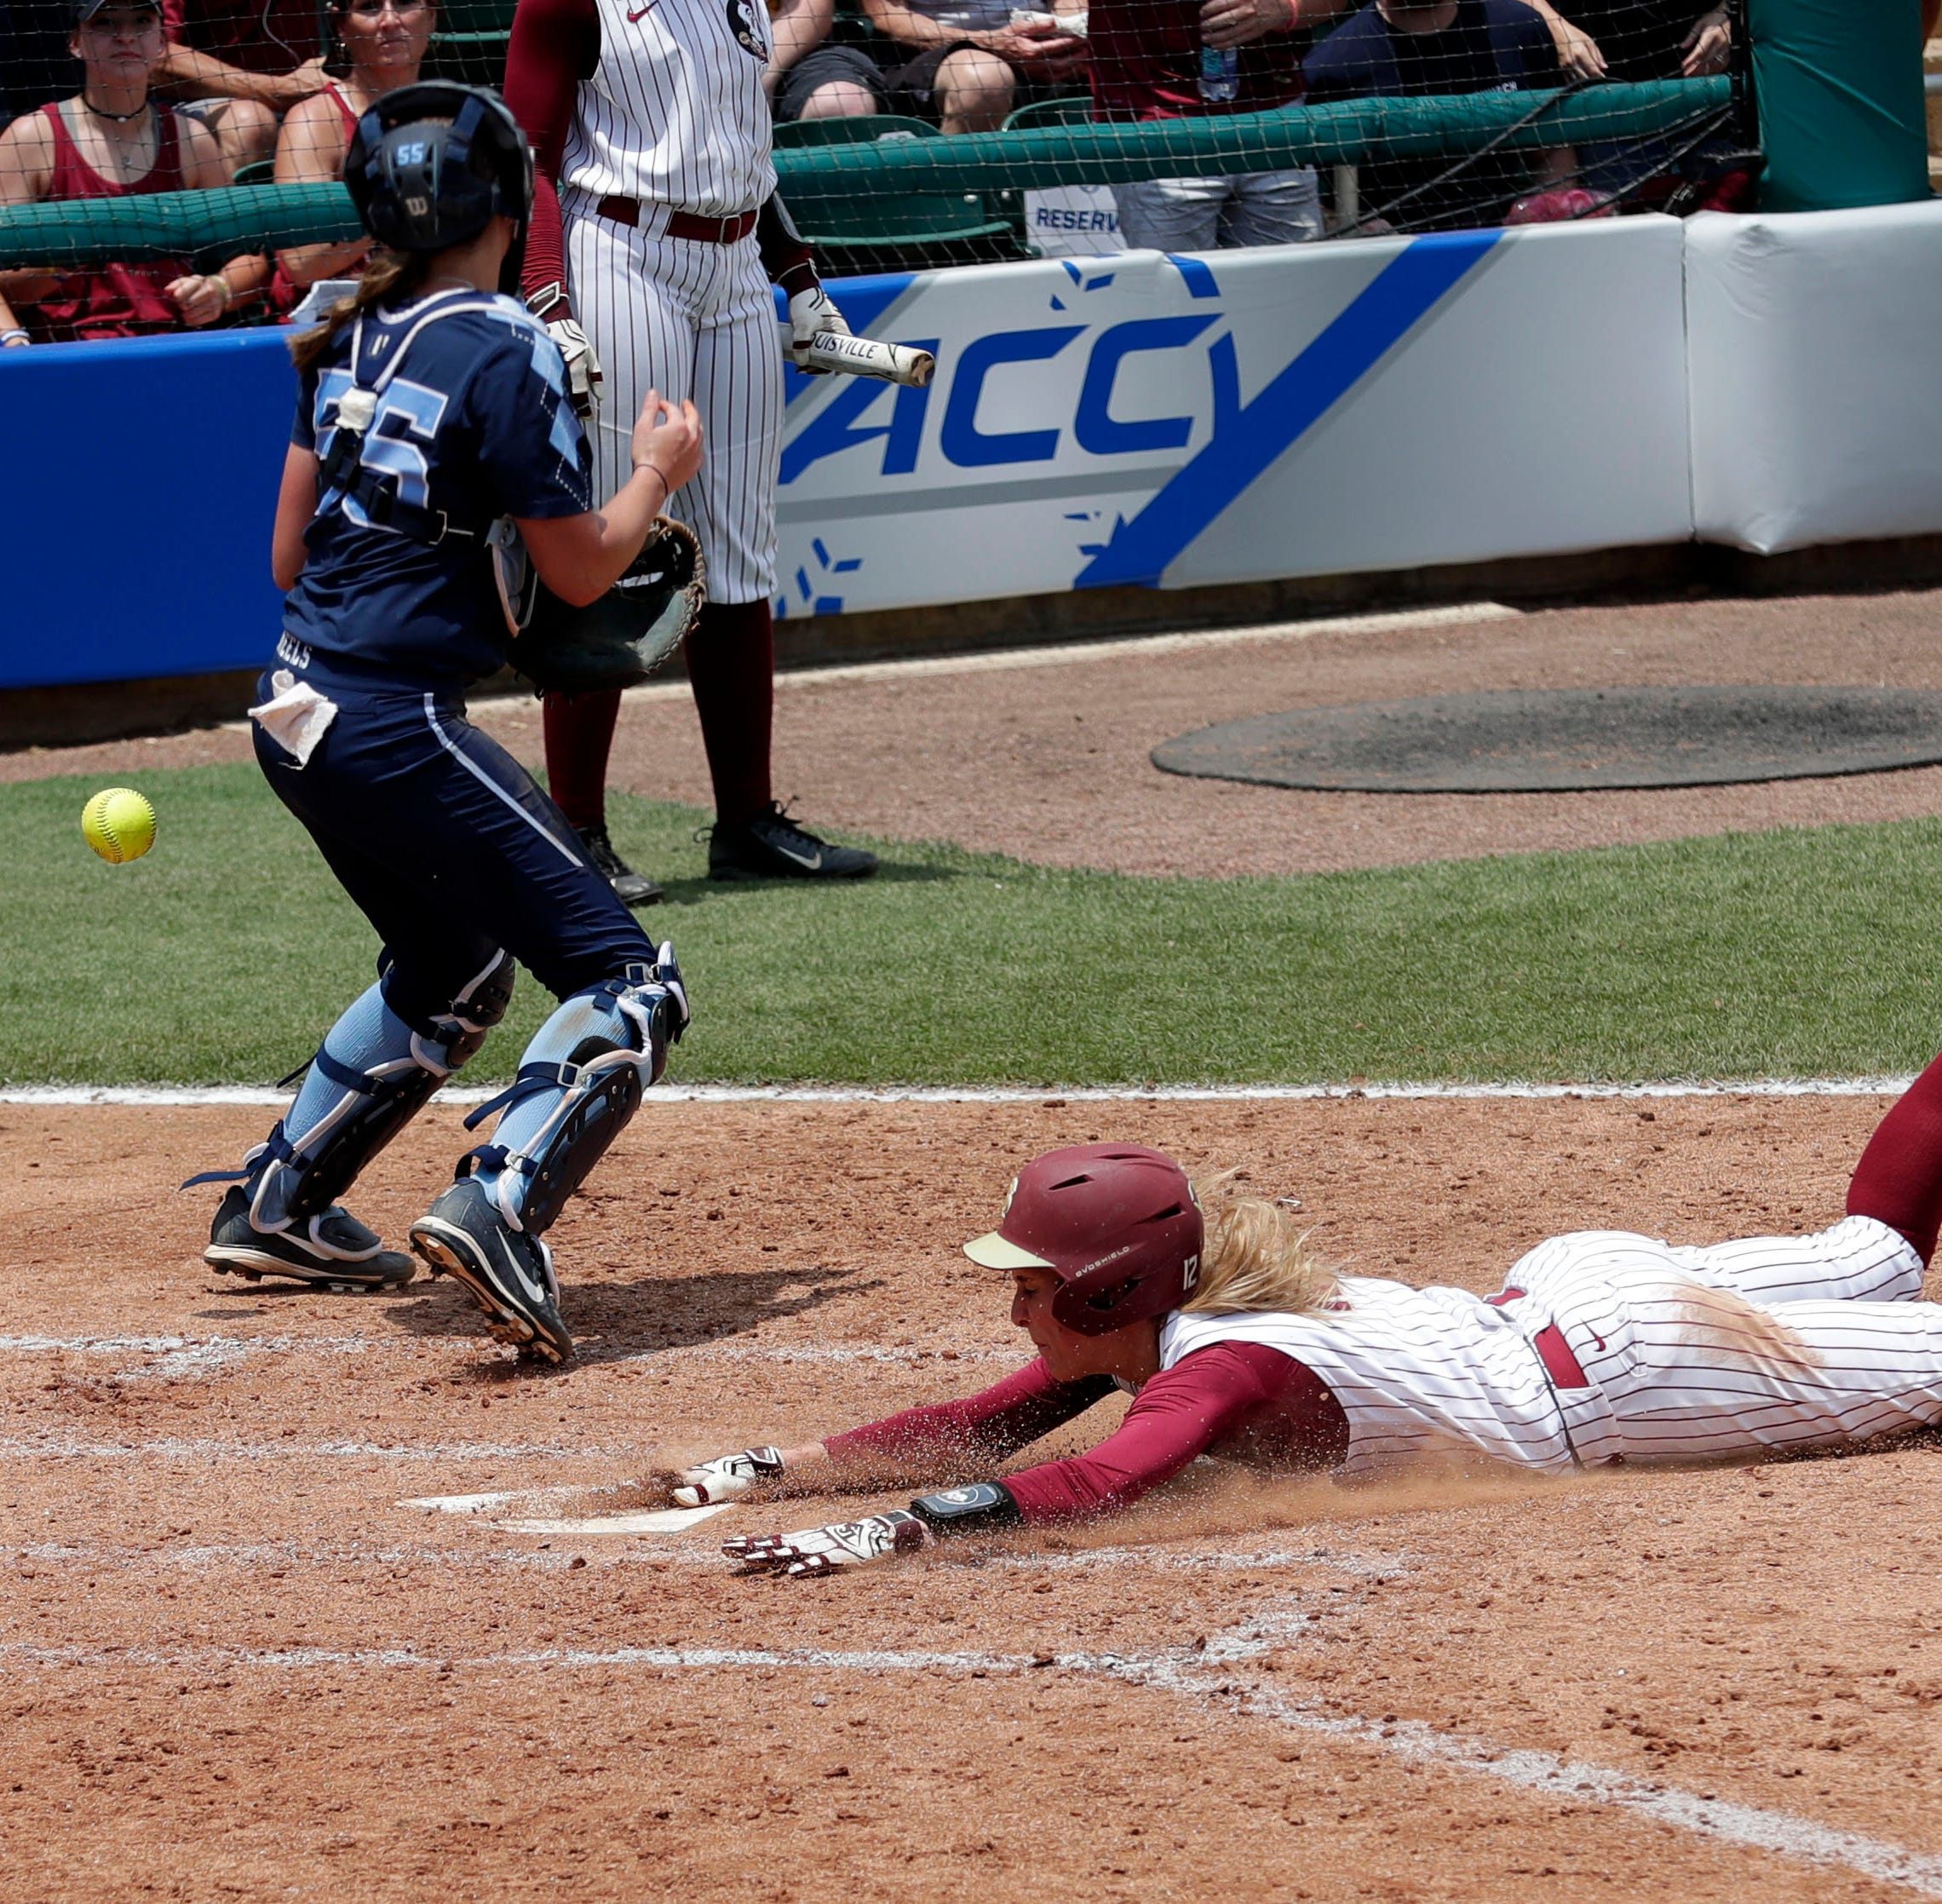 NCAA Softball Tournament: FSU vs. Oklahoma State highlights, score from Thursday's game